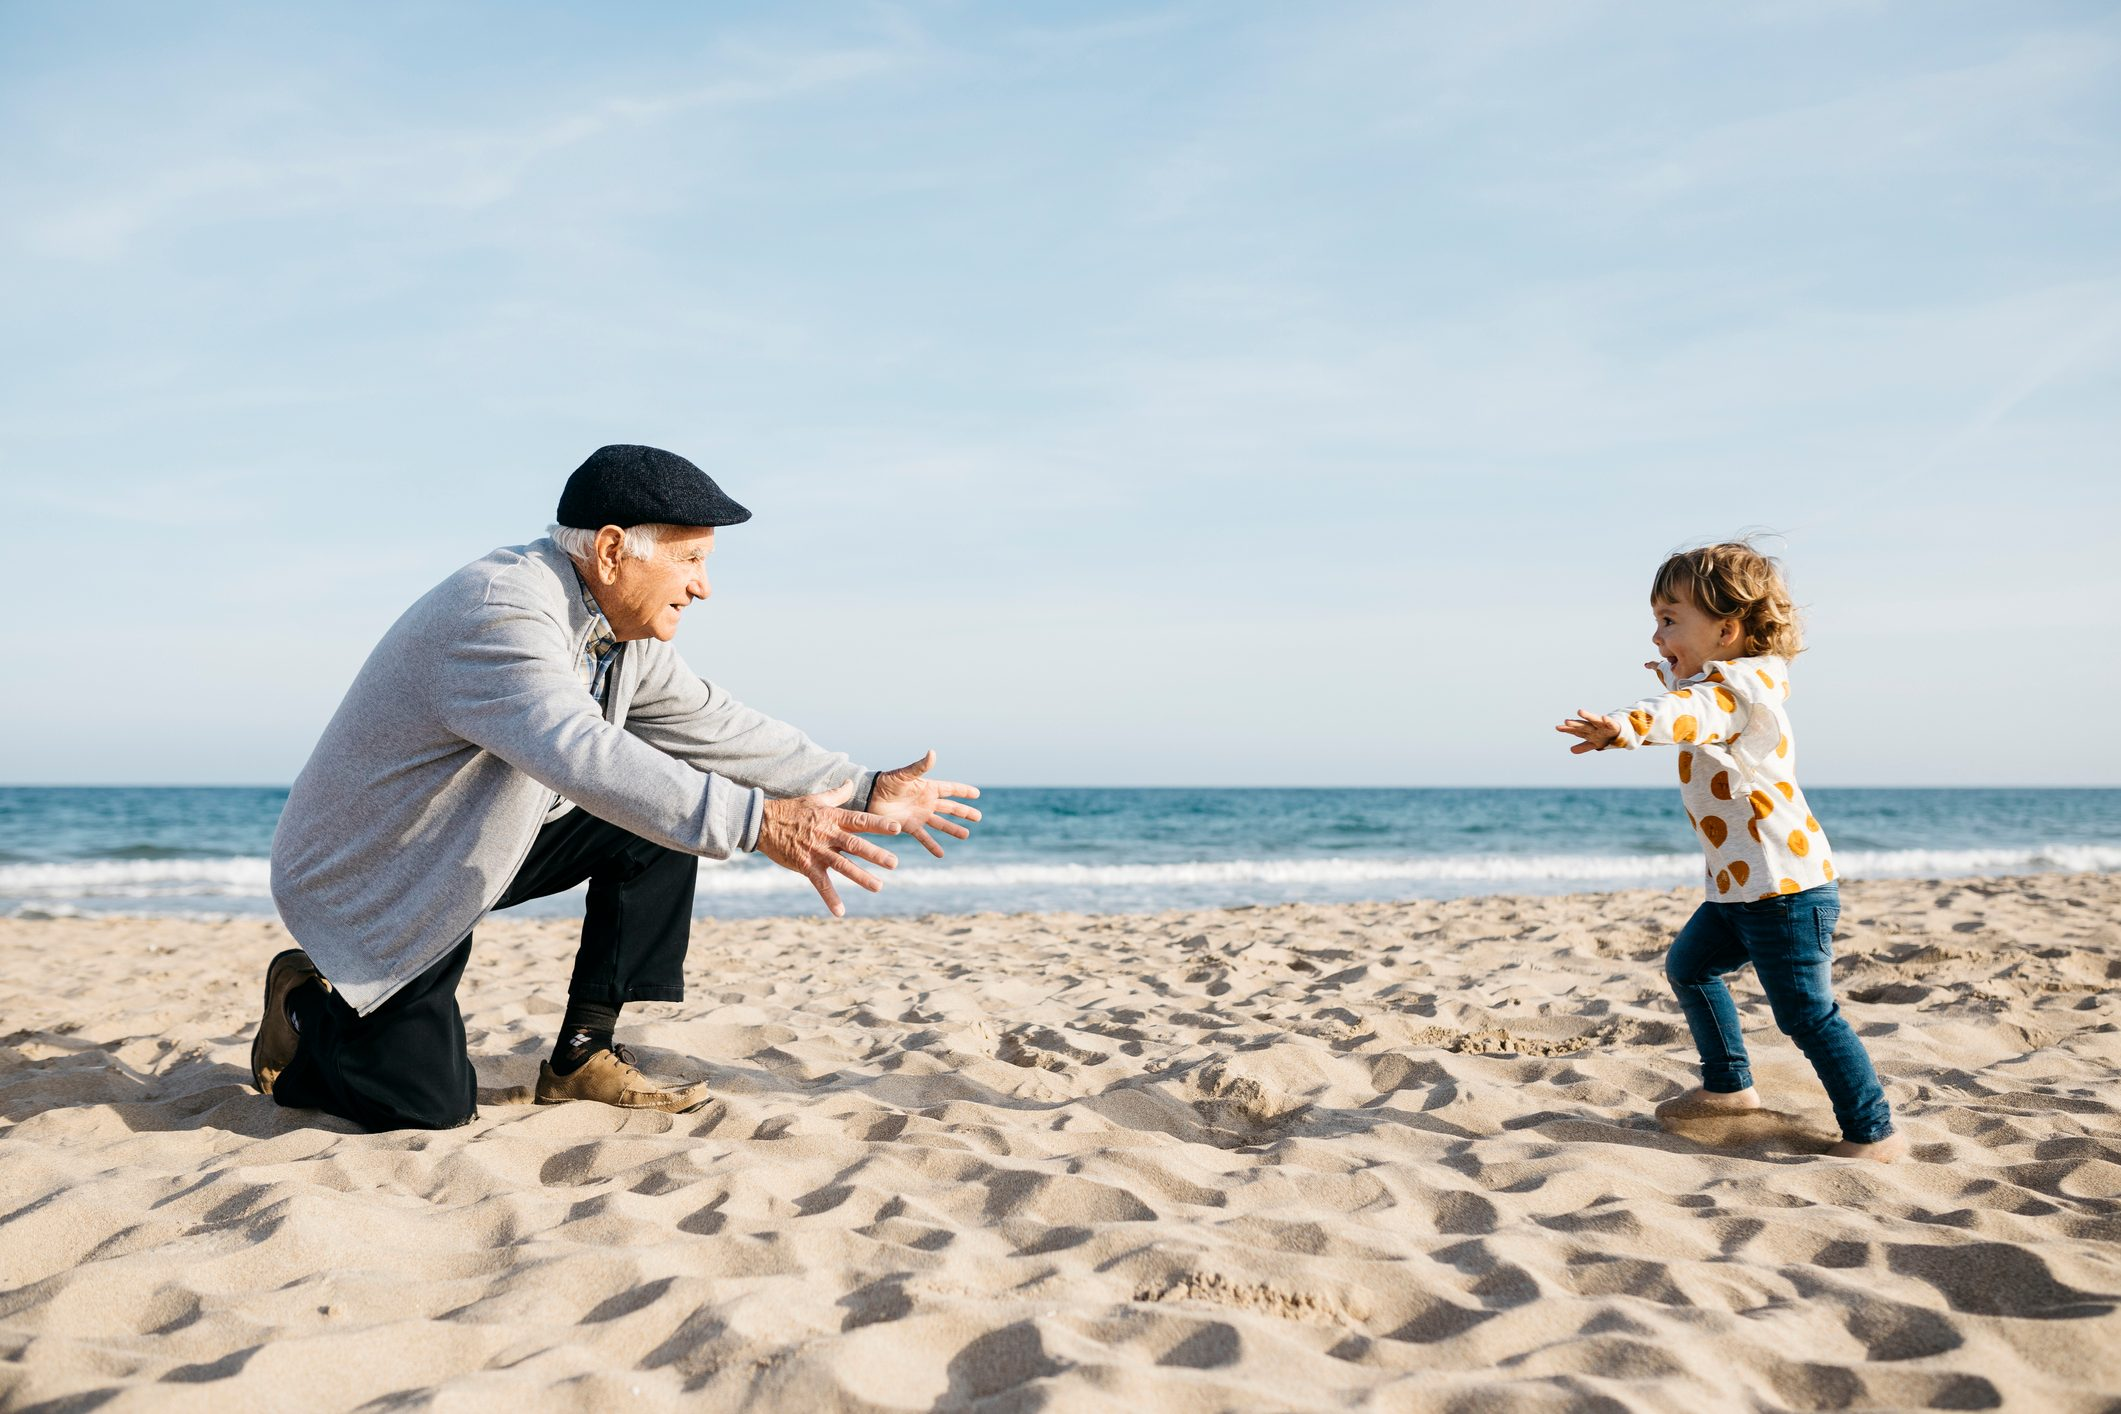 Grandfather playing with his granddaughter on the beach